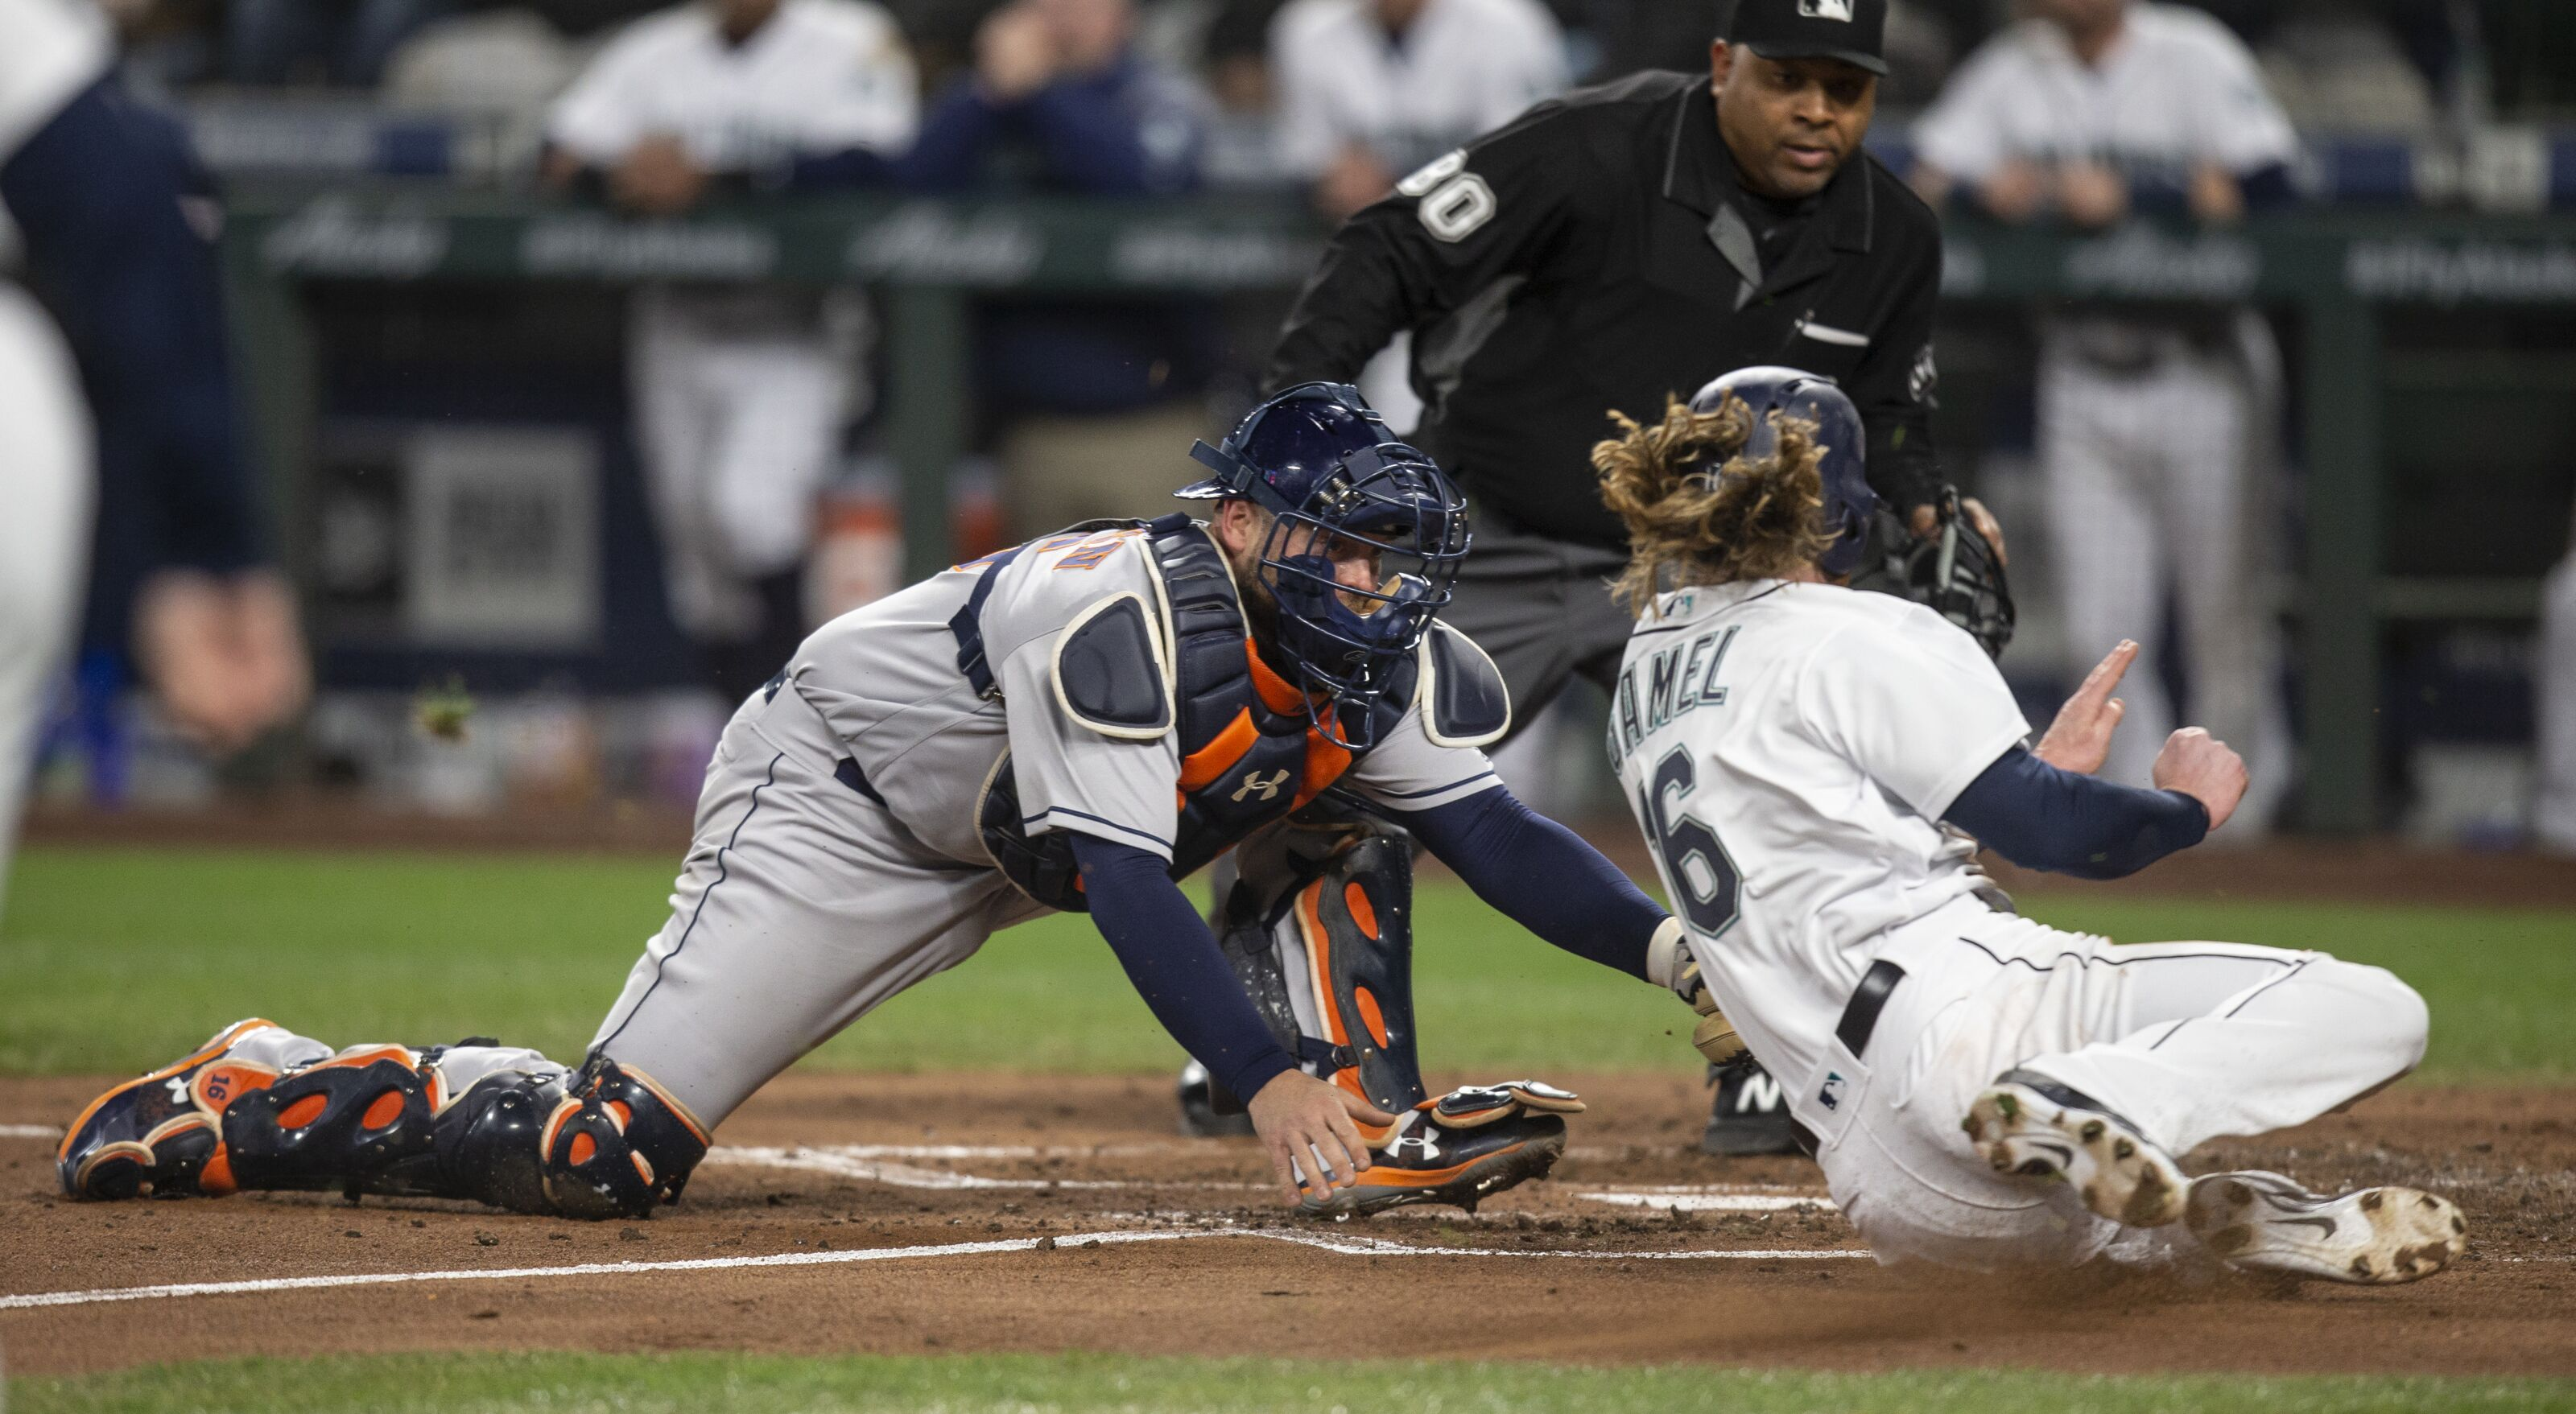 948372614-houston-astros-v-seattle-mariners.jpg